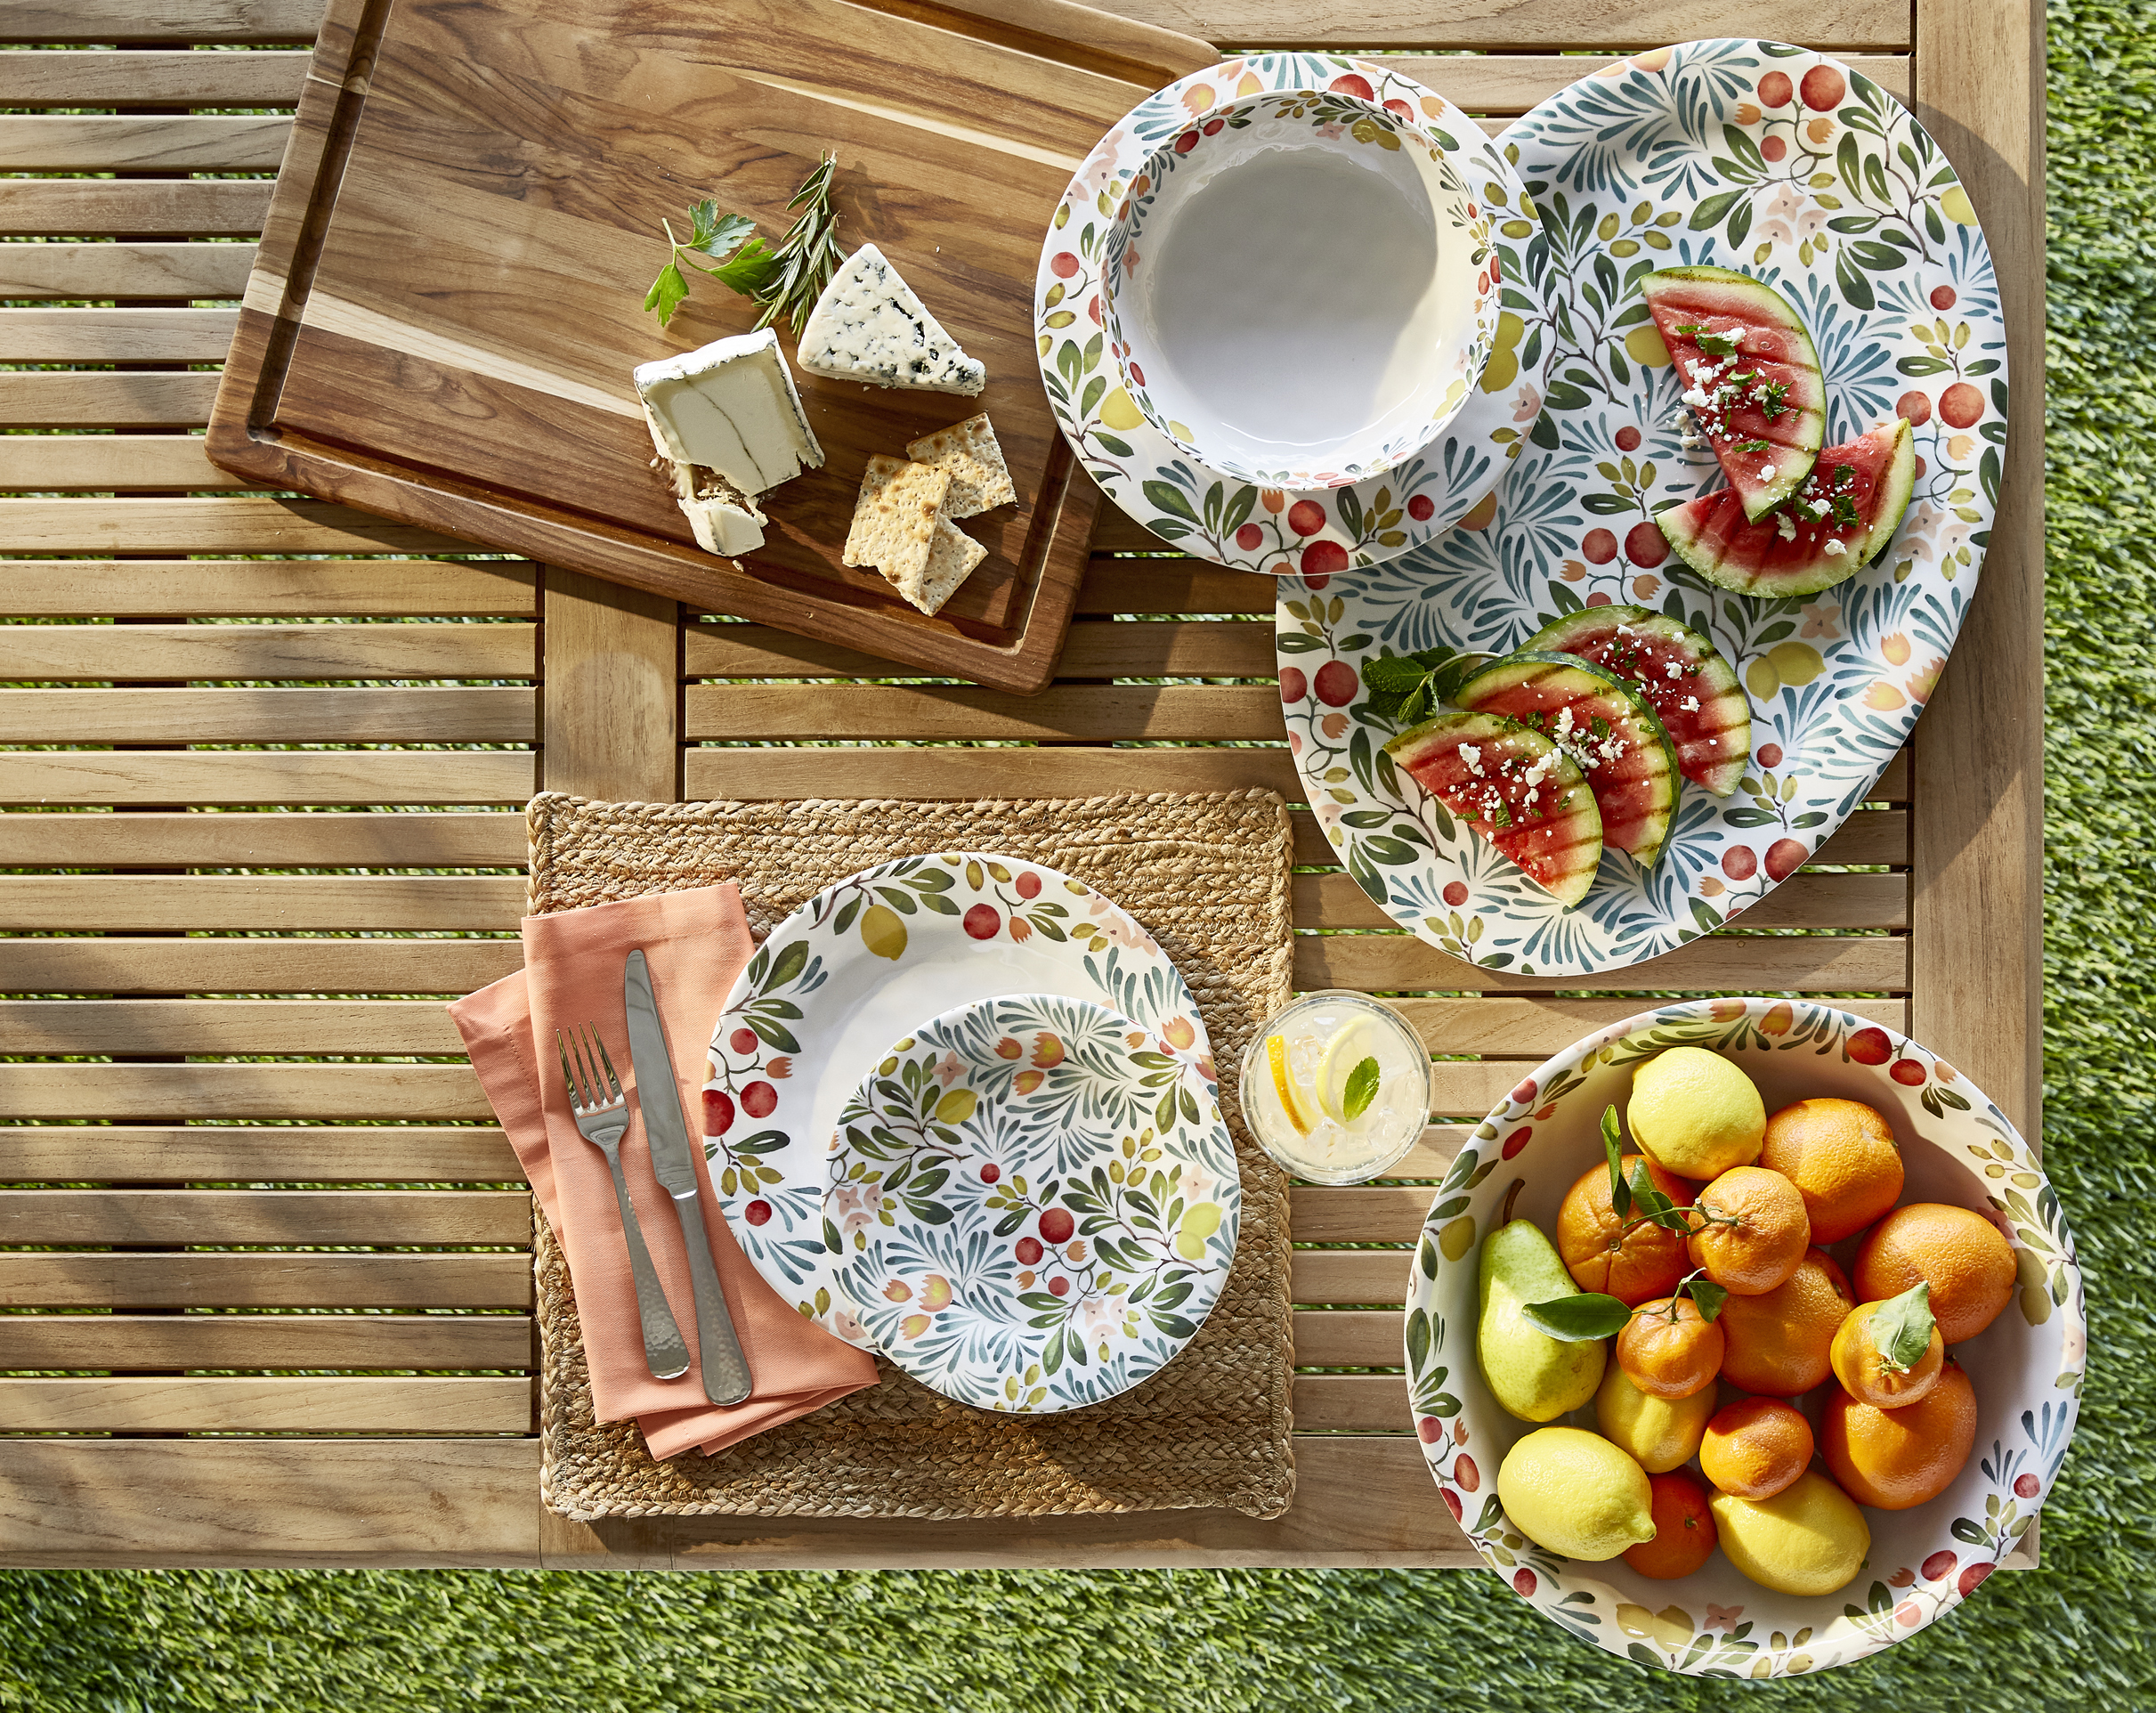 cheese-board-fruit-bowl-on-outdoor-table